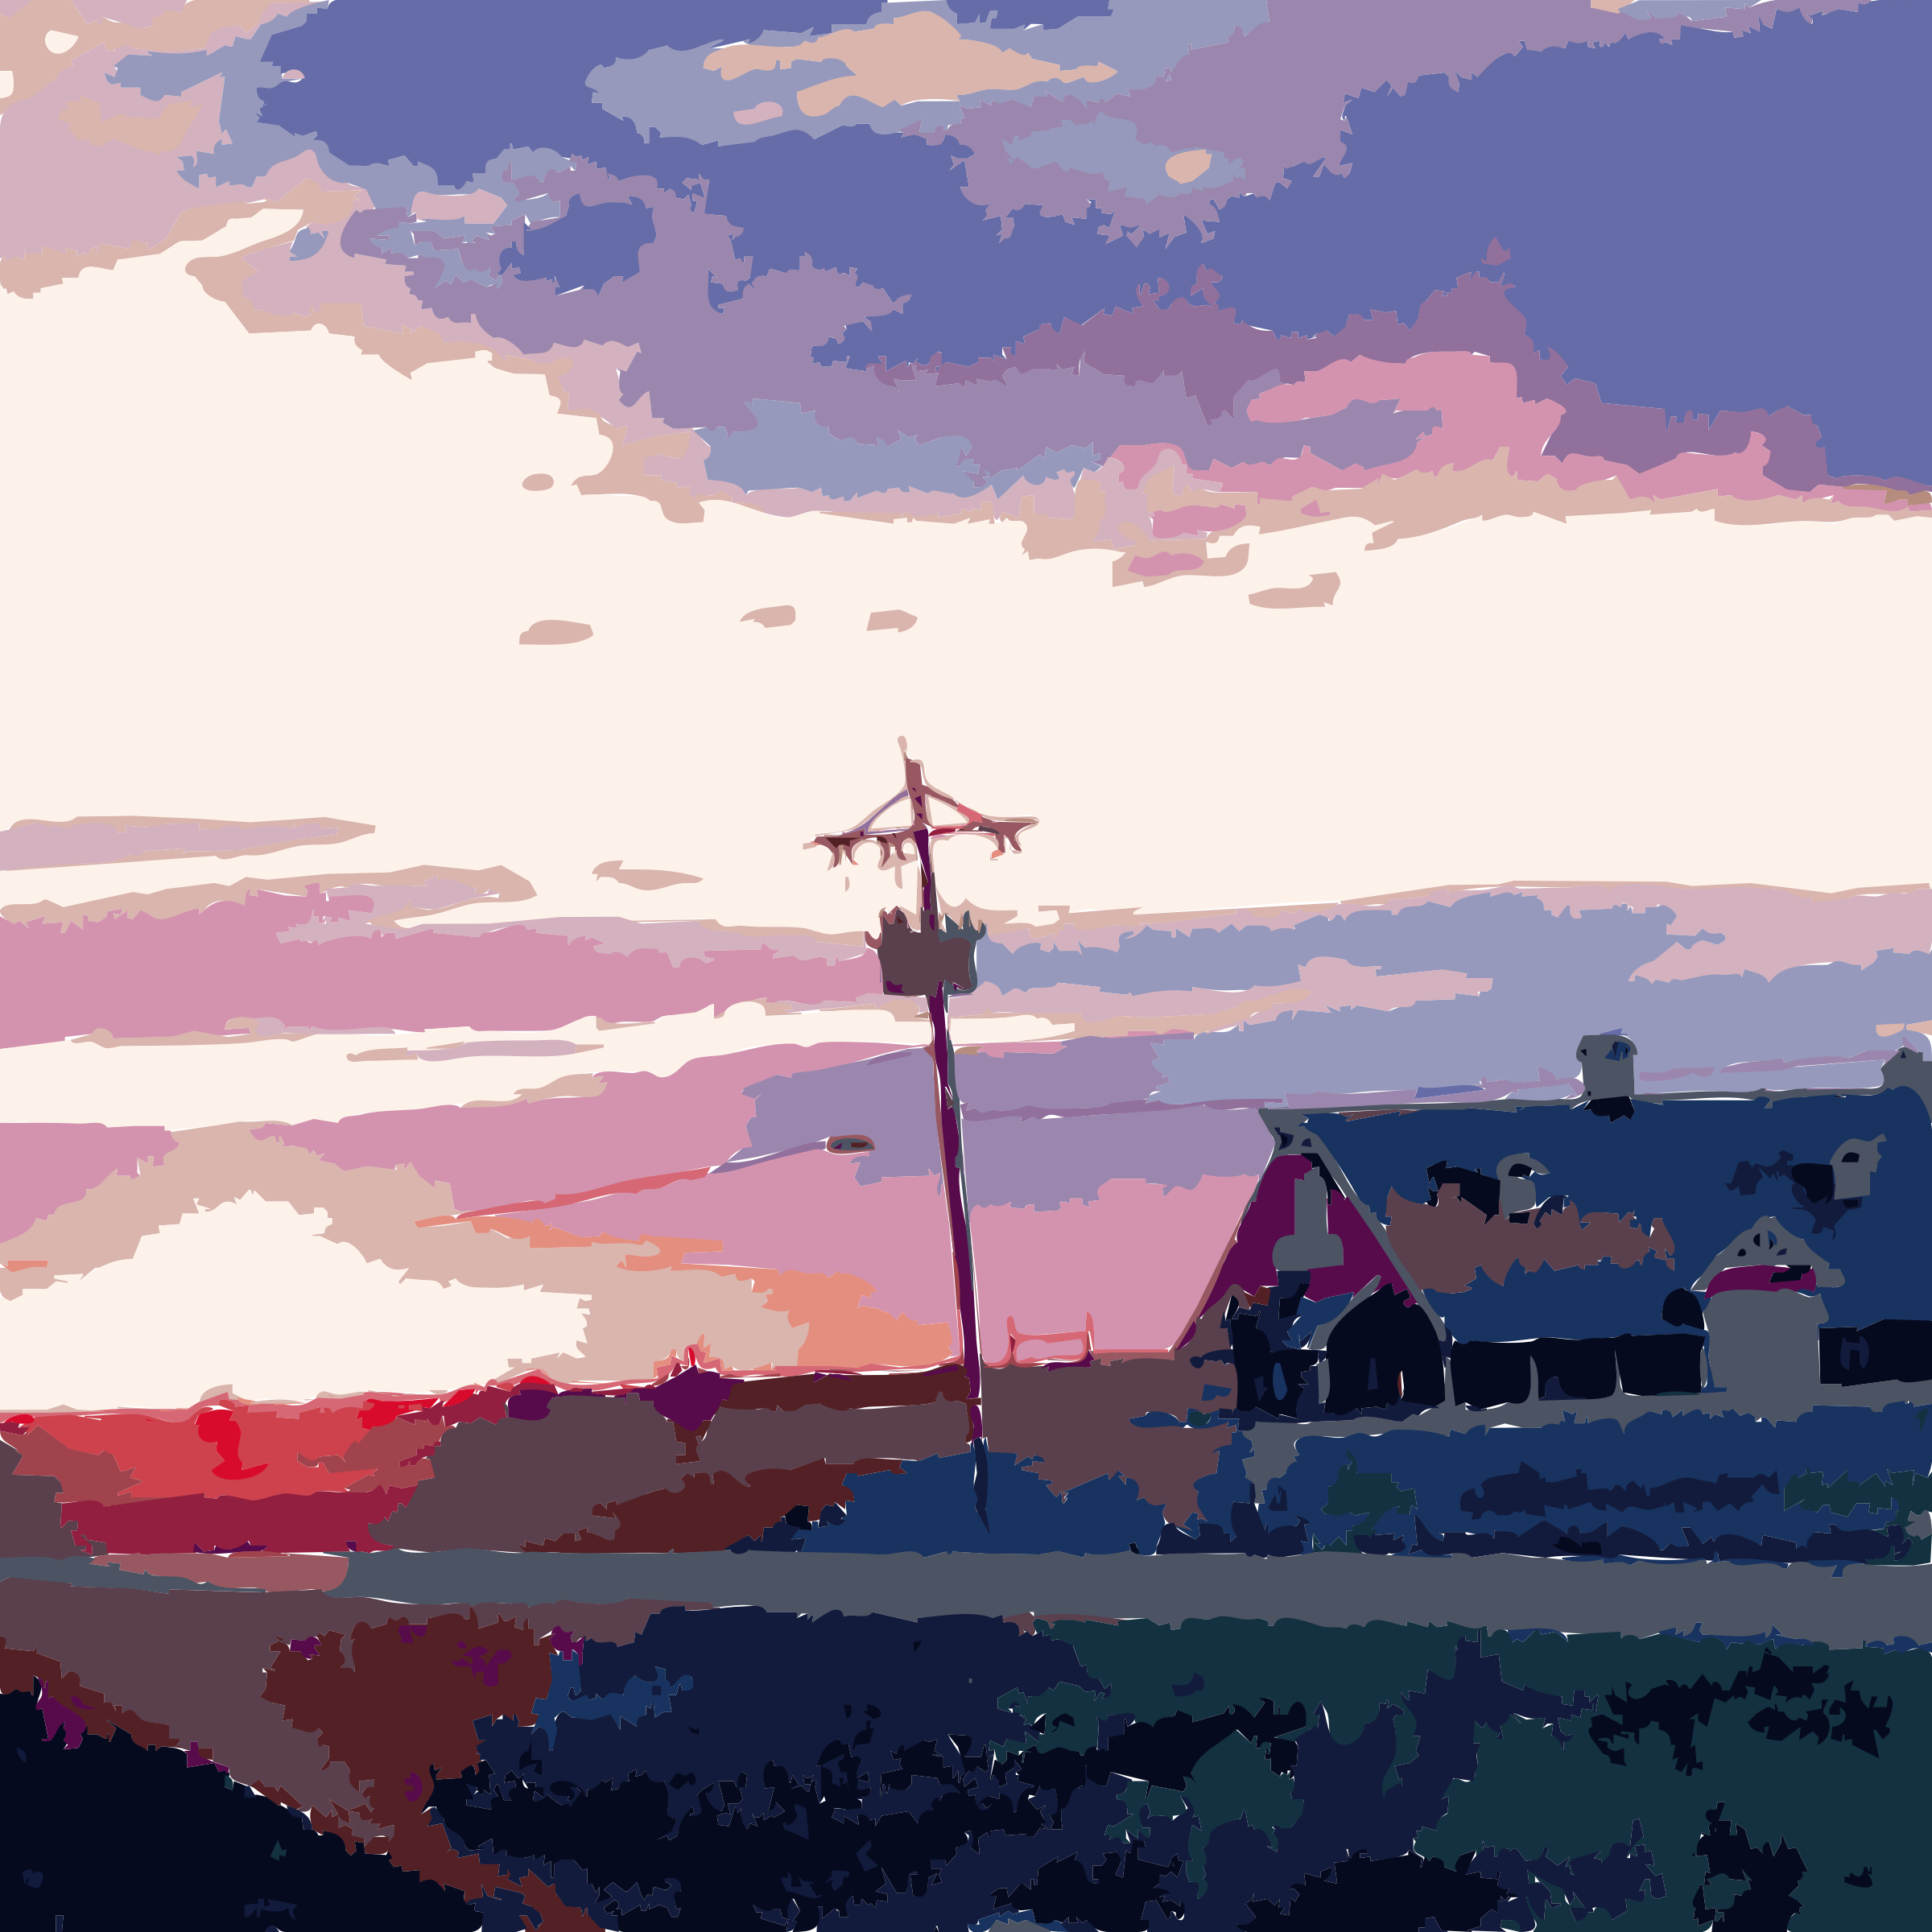 Daily Sketch Barn Sunset by keriann3